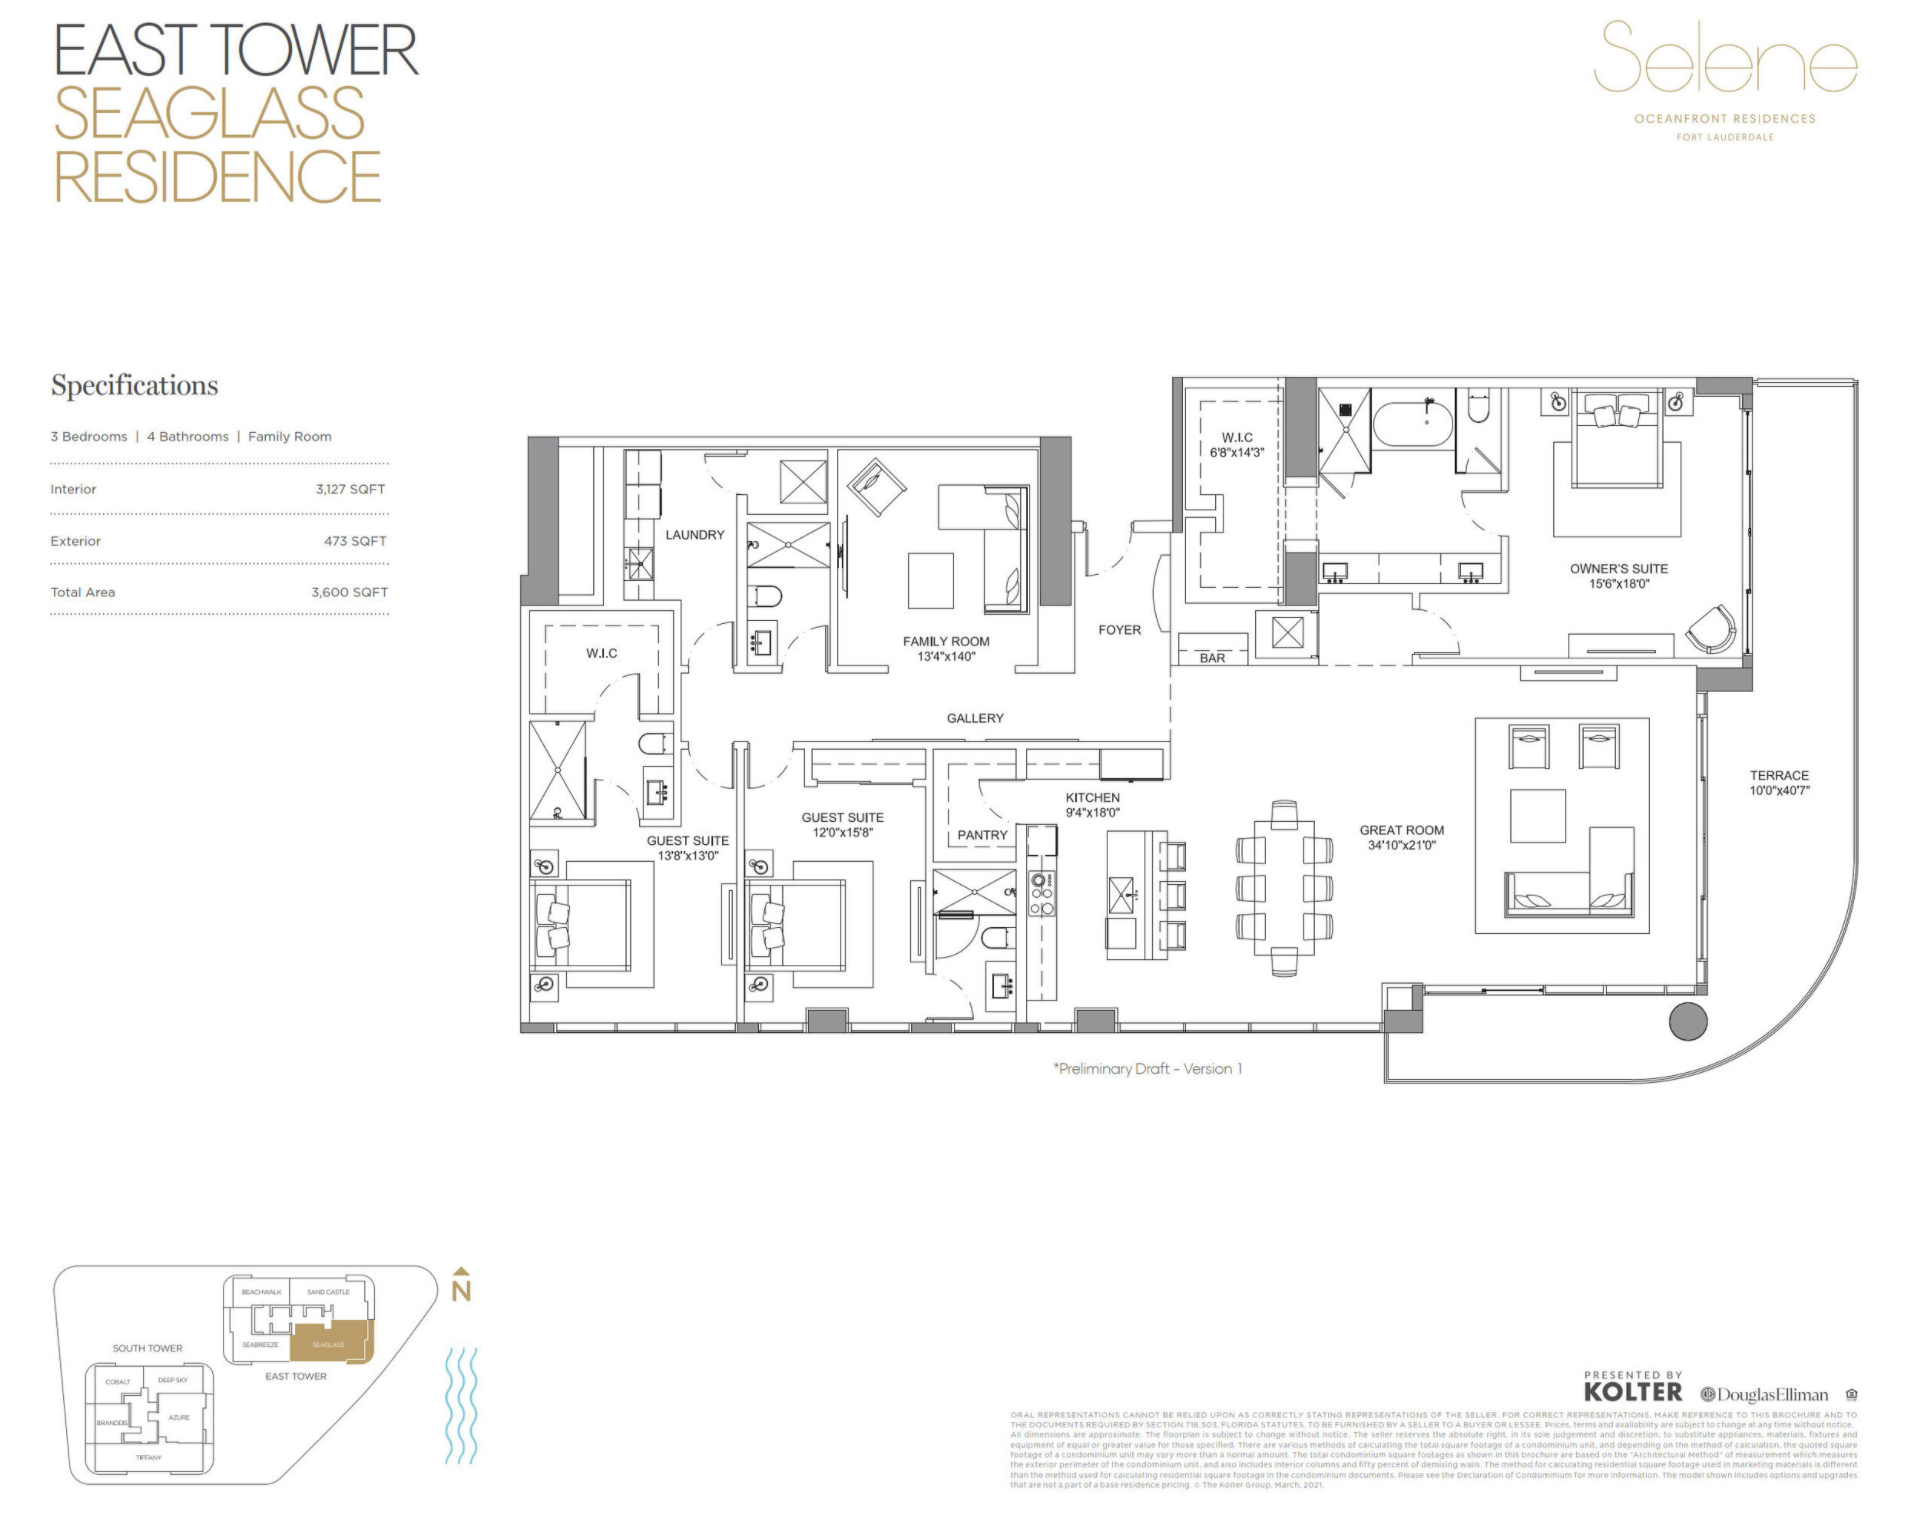 East Tower | Seaglass | 3 Be / 4 Ba / Family Room